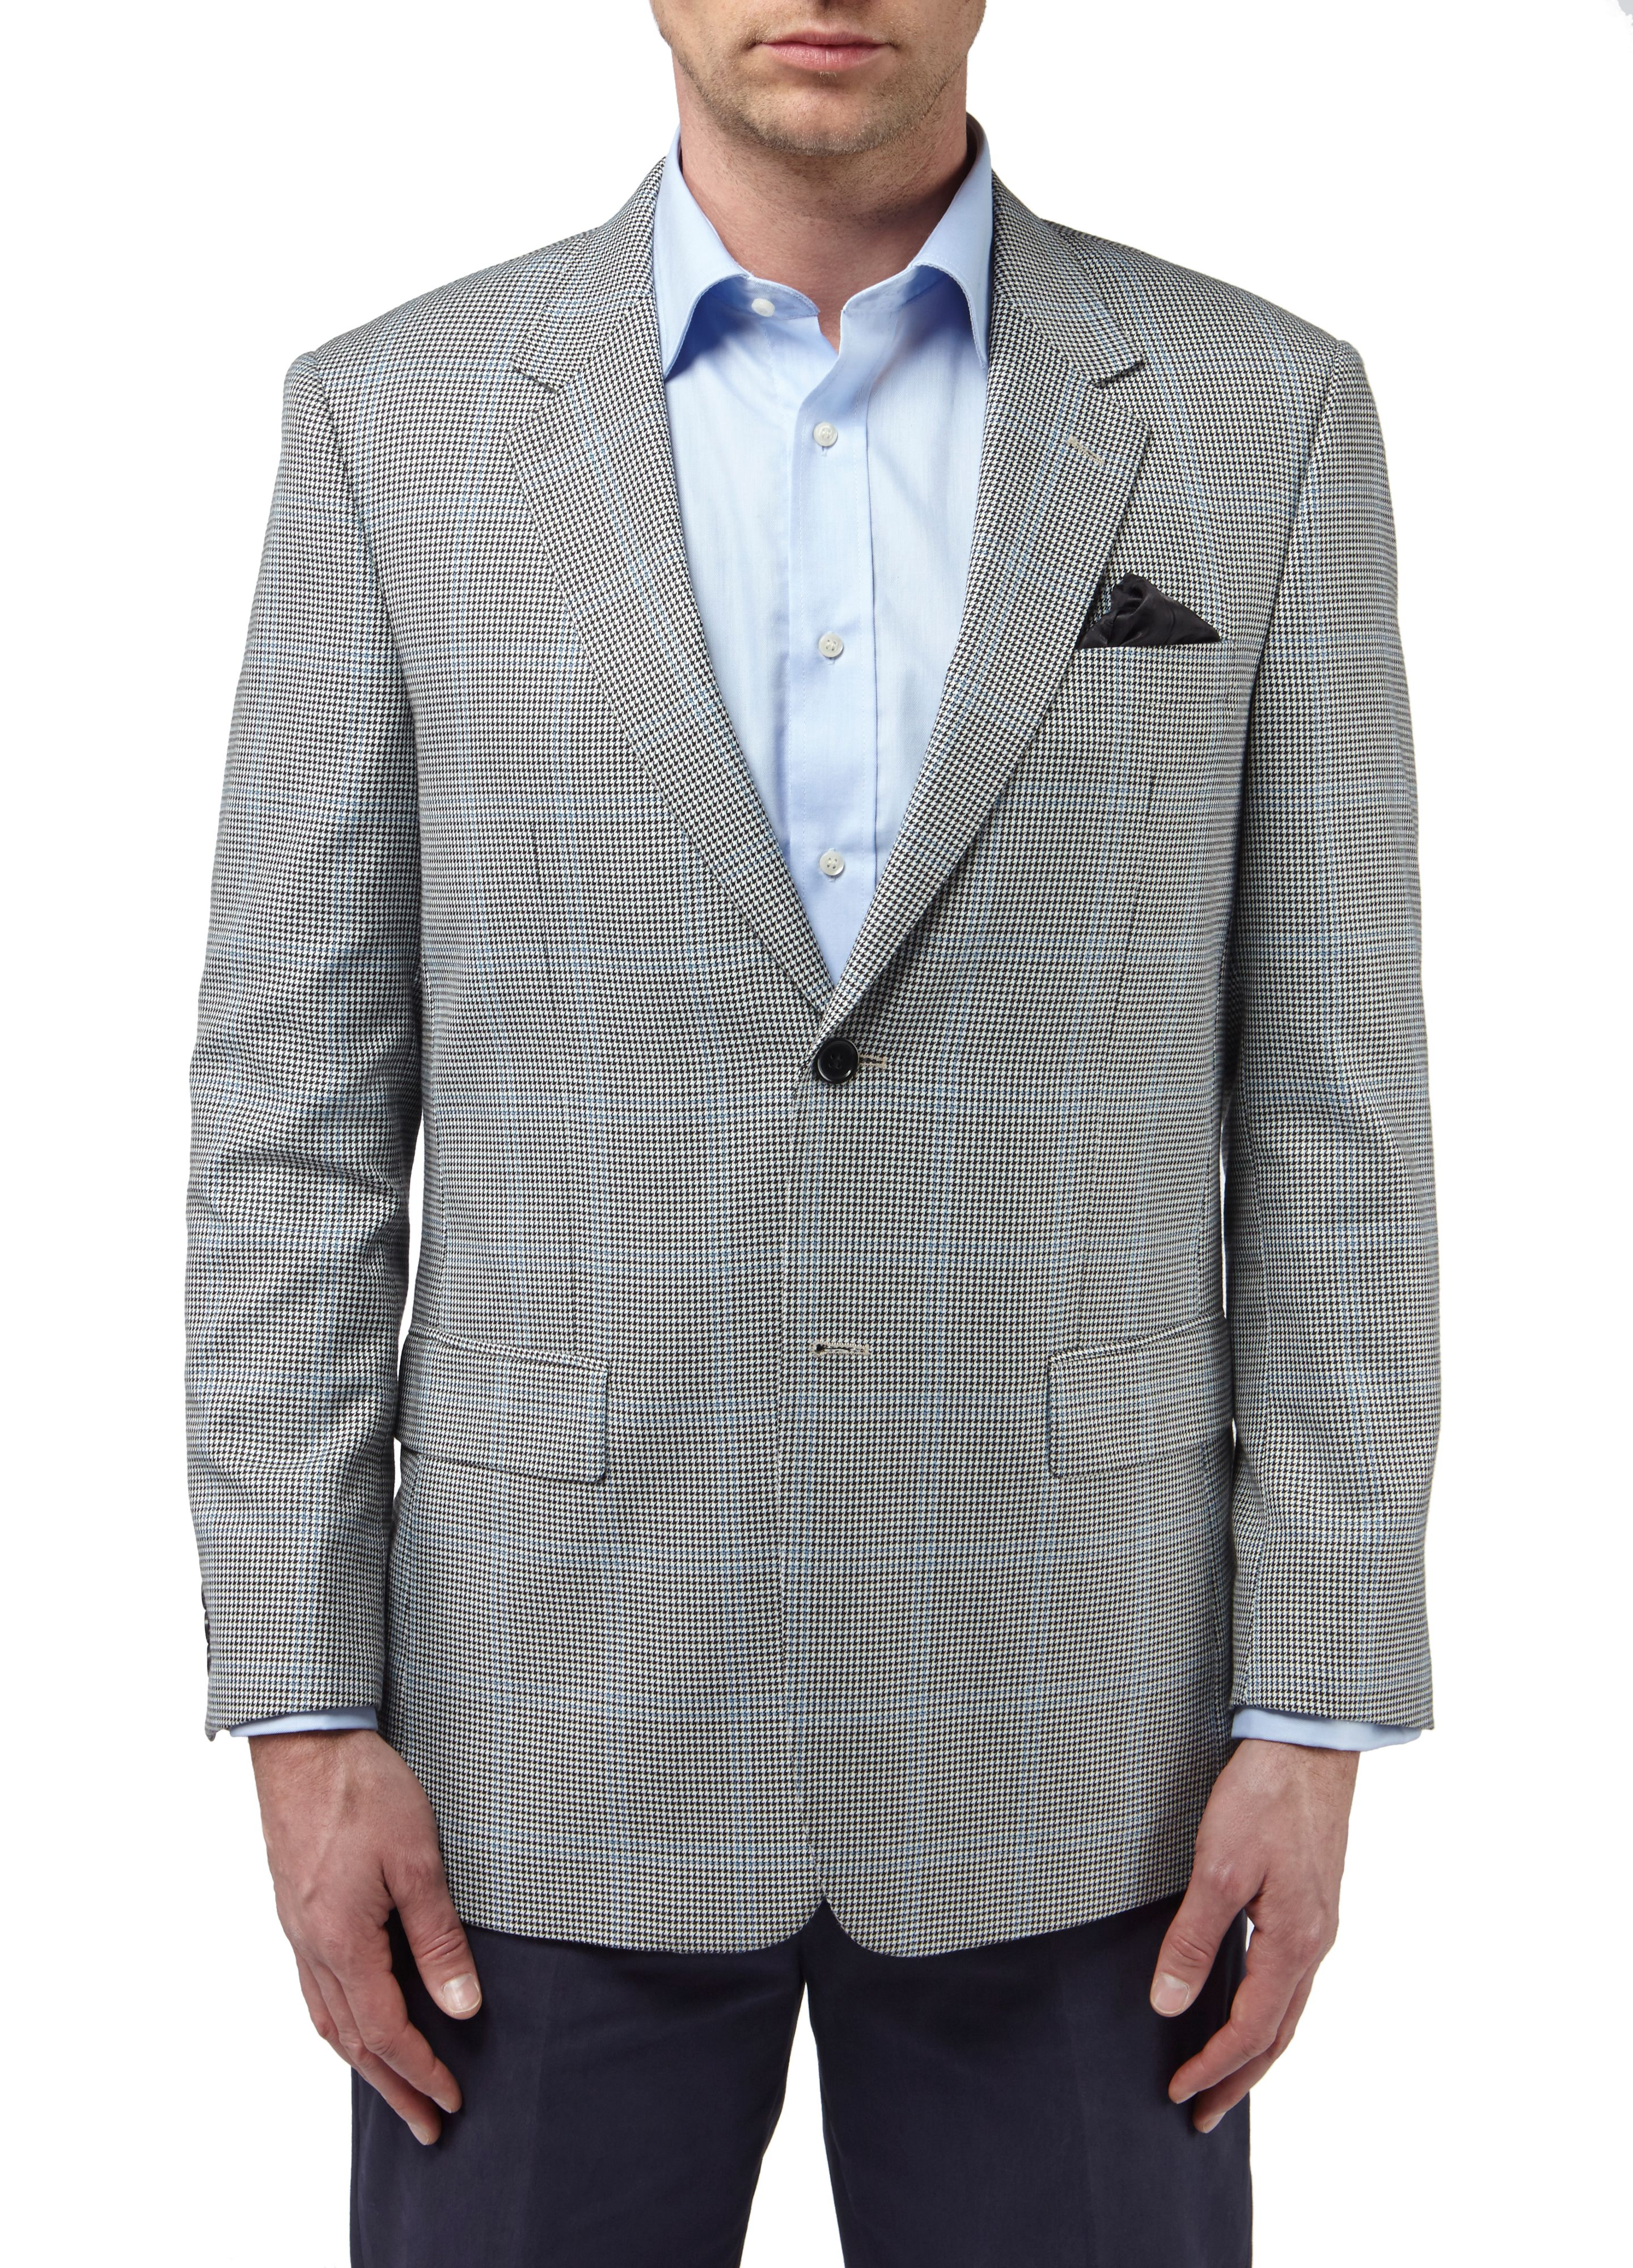 Brixham sports jacket